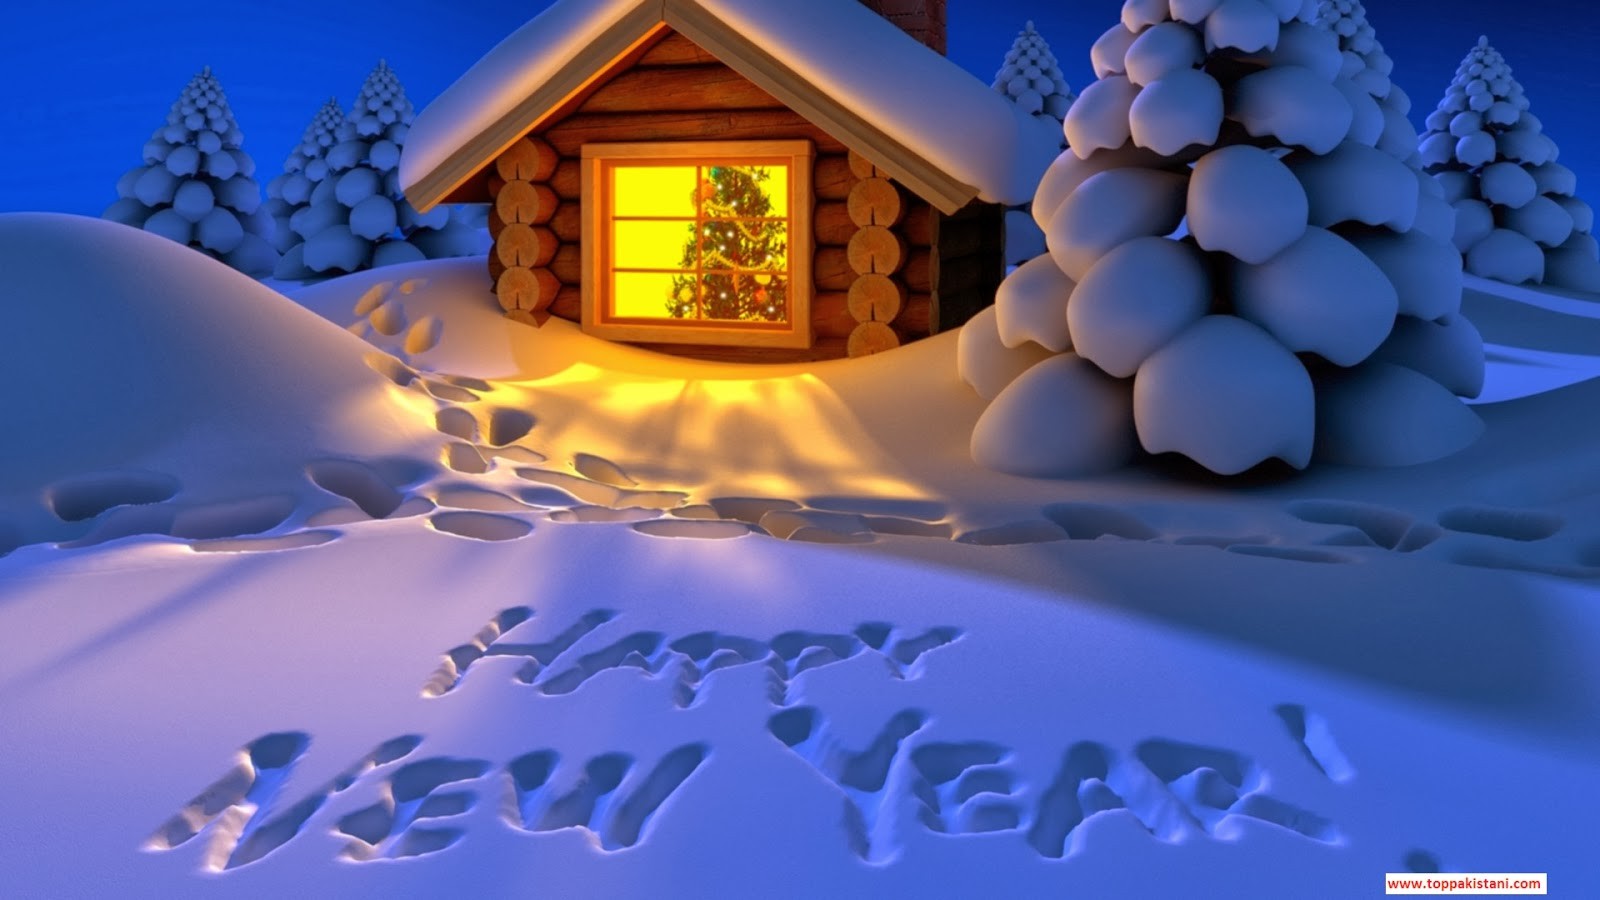 HAPPY NEW YEAR 2014: Happy new year 2014 Greating cards and wallpaper